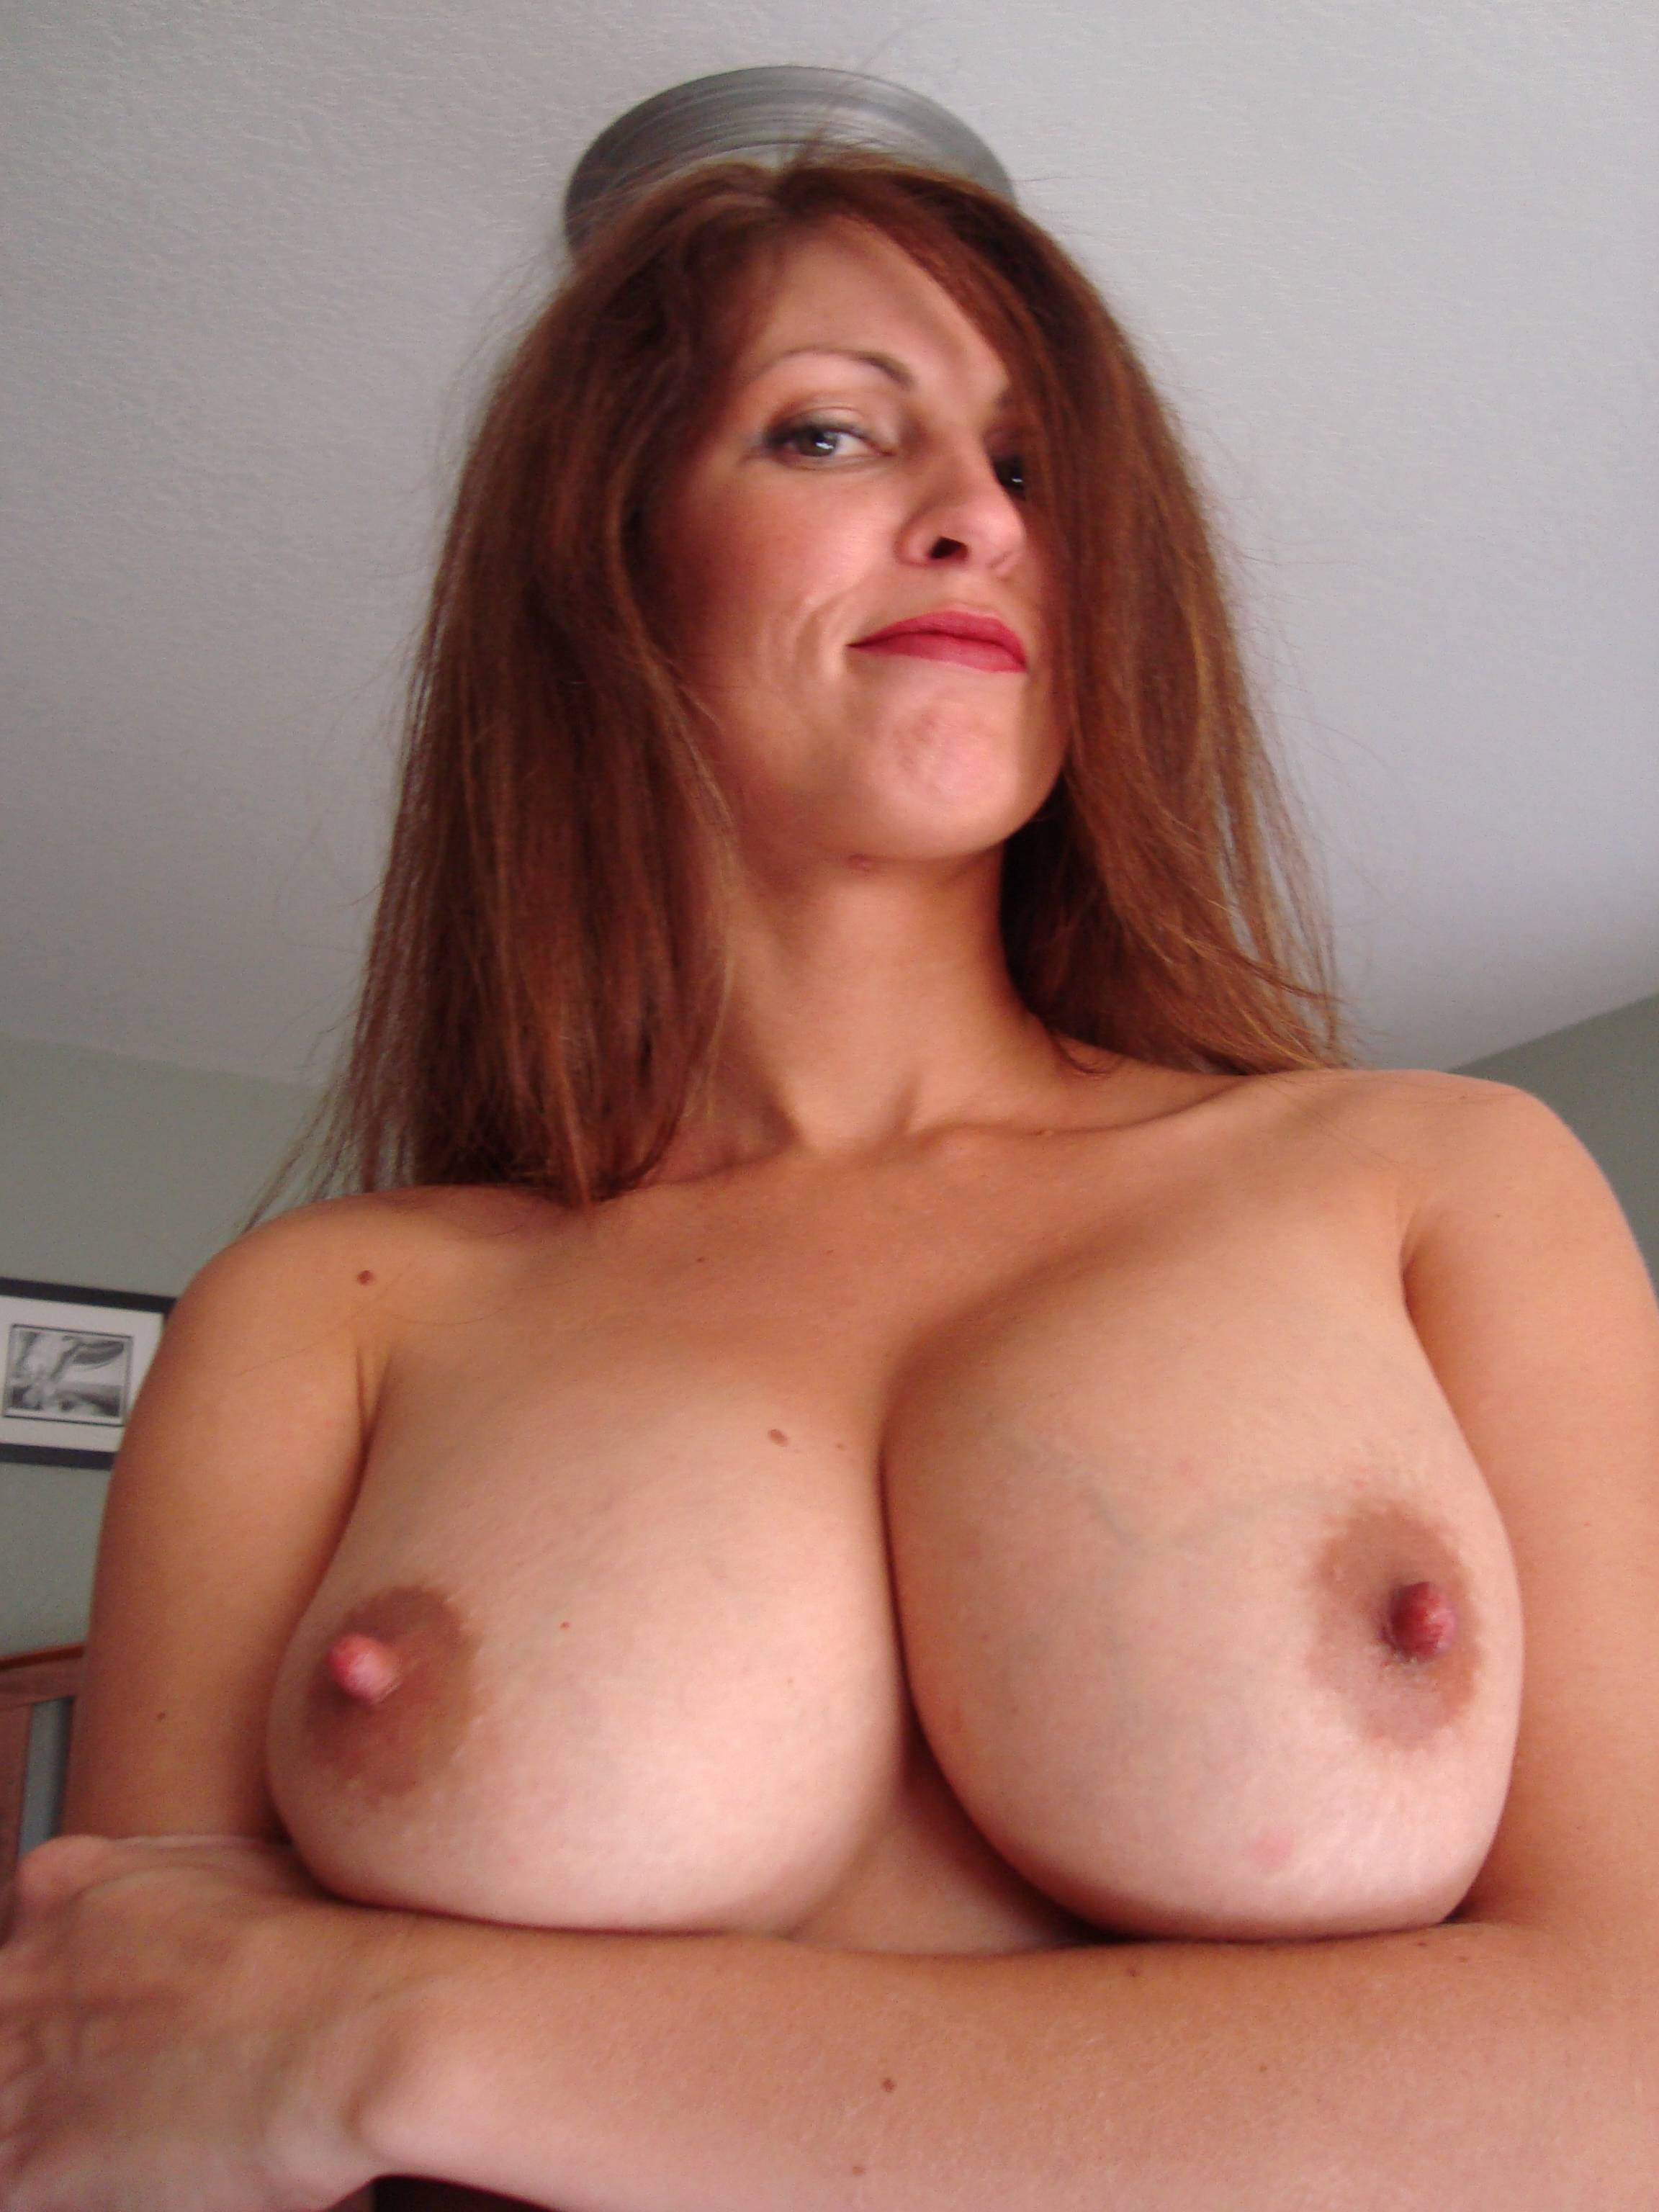 Big Natural Tits Asian Amateur